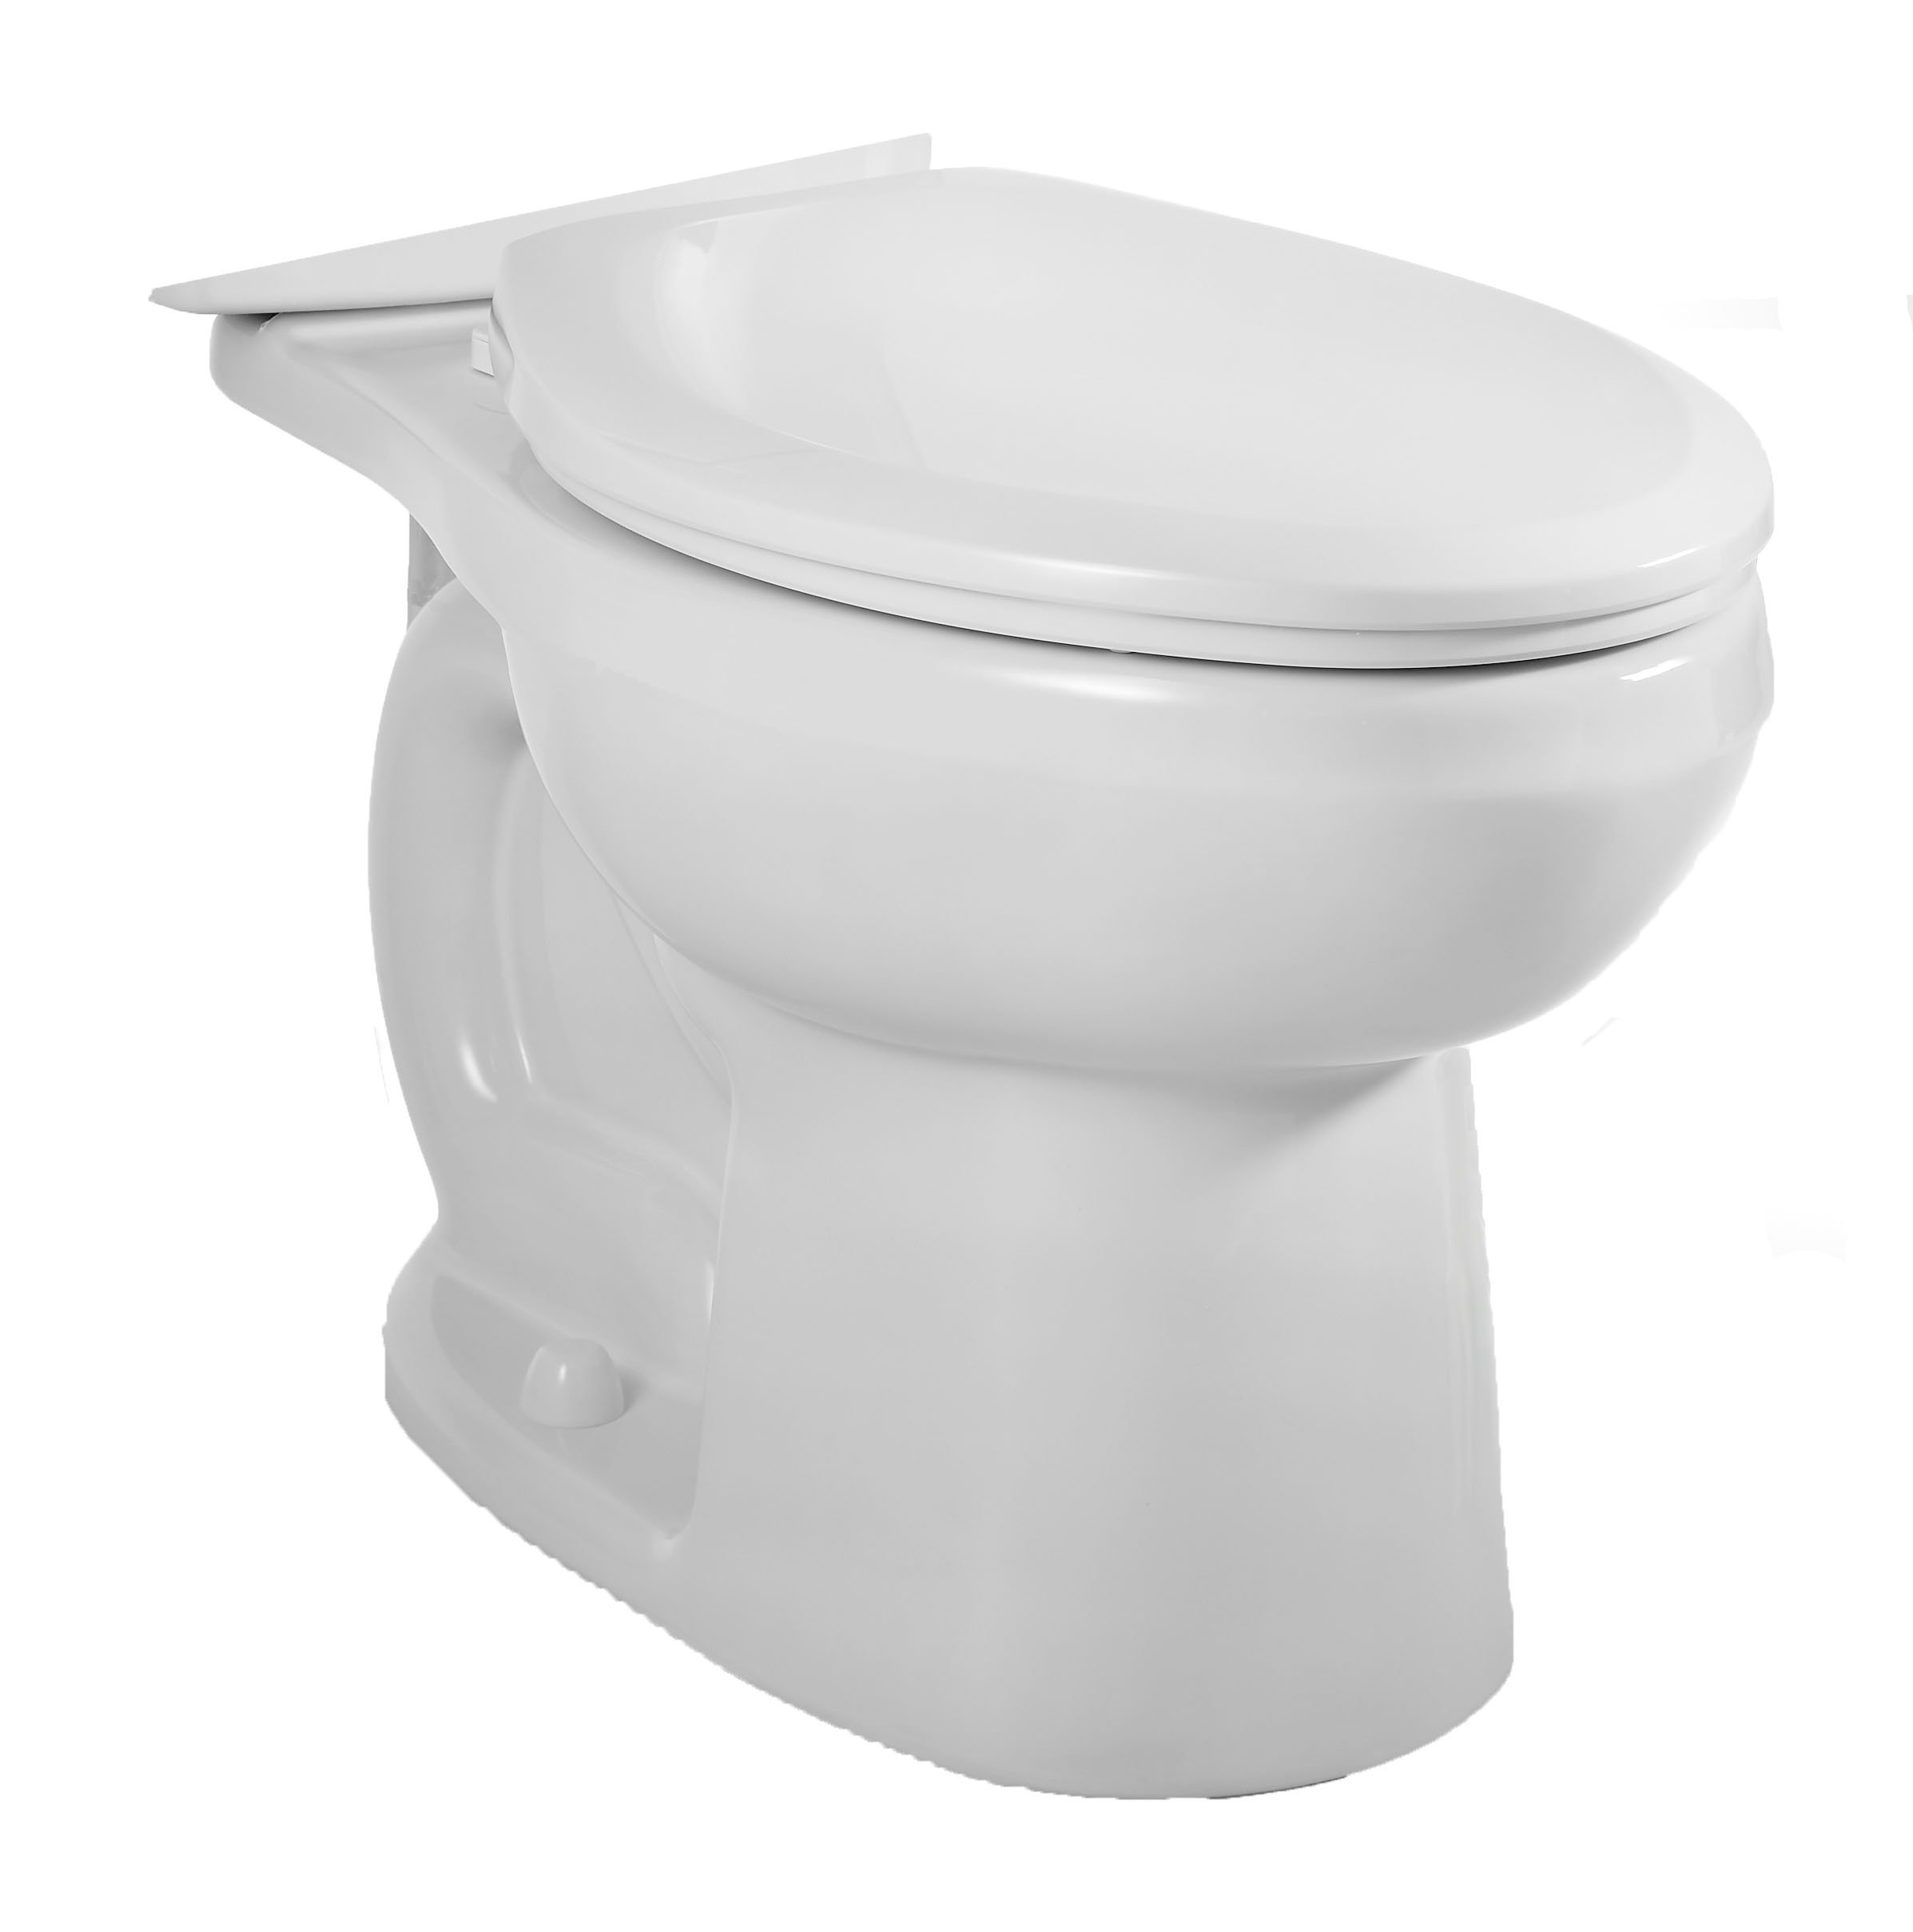 American Standard 3706.216.020 H2Option Siphonic Dual Flush Elongated Toilet Bowl, White (Bowl Only)